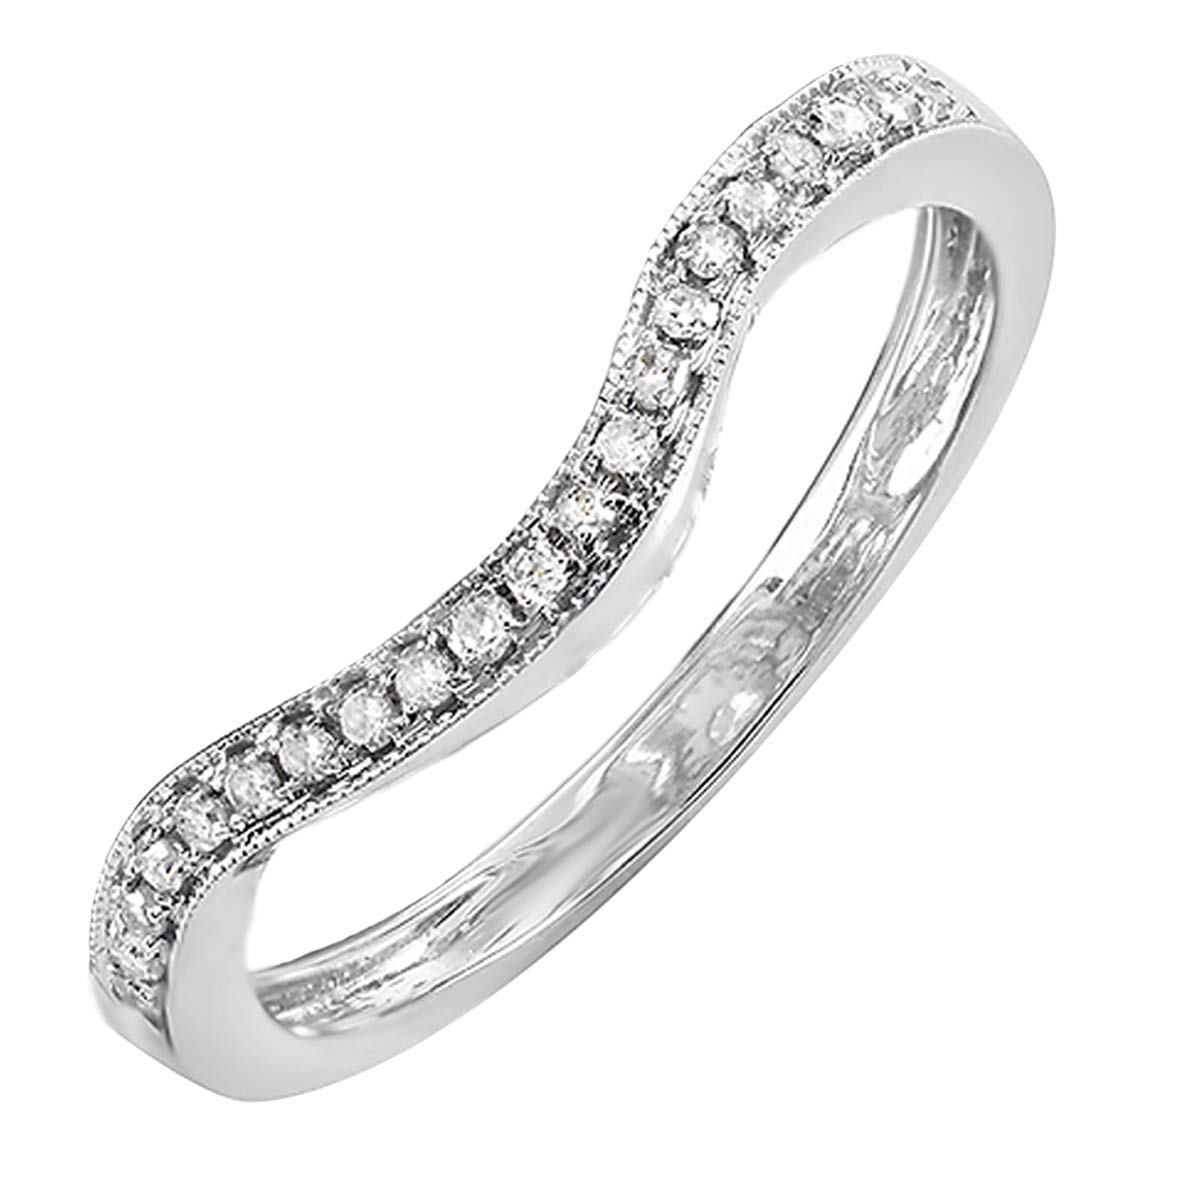 Dazzlingrock Collection 0.15 Carat (ctw) 14K Round White Diamond Ladies Wedding Contour Guard Ring, White Gold, Size 5.5 by Dazzlingrock Collection